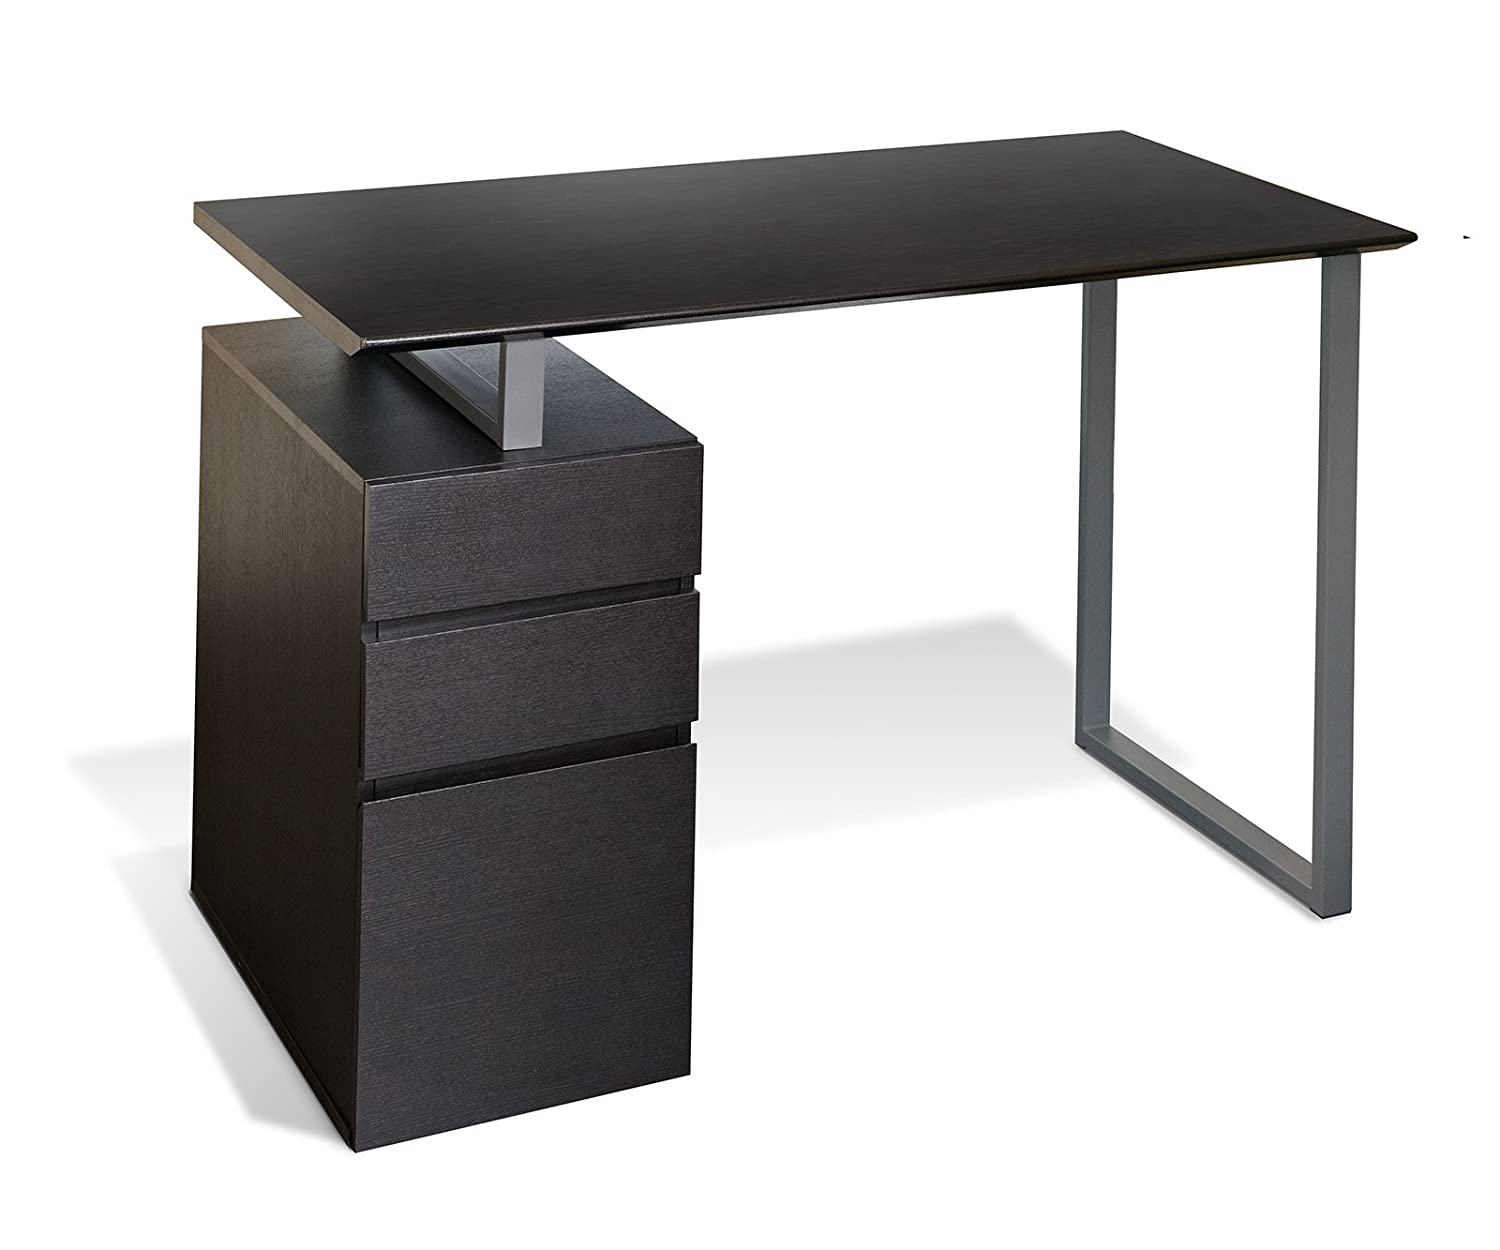 Unique Furniture 220-ESP Writing Desk with Drawers - Espresso